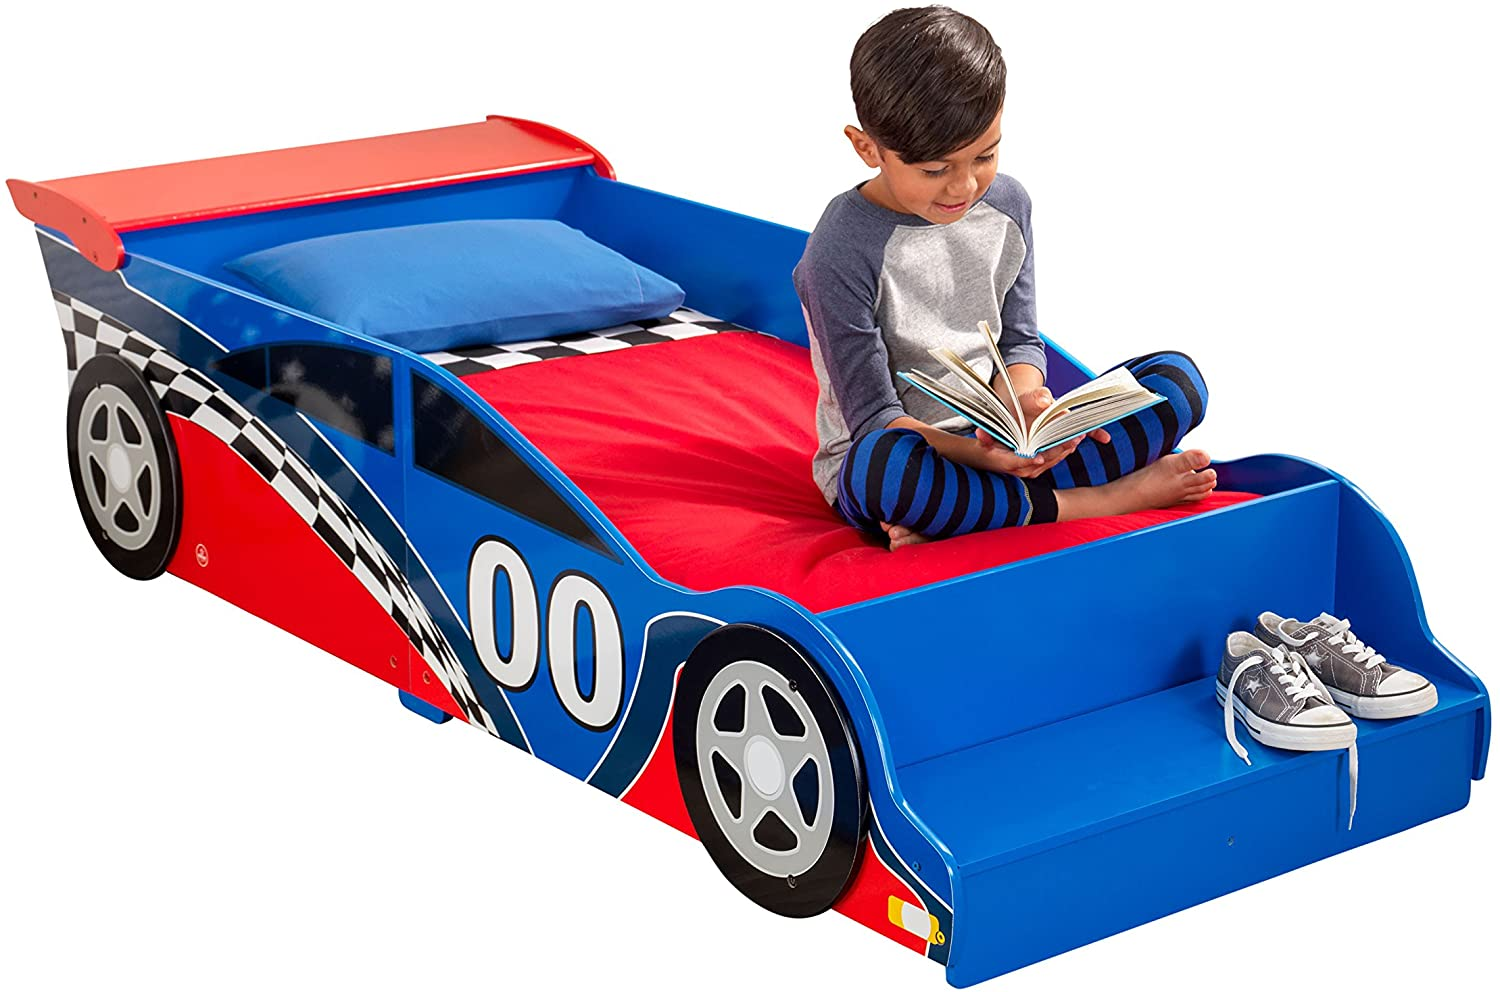 Reviewing the Best Race Car Toddler Bed from KidKraft 1